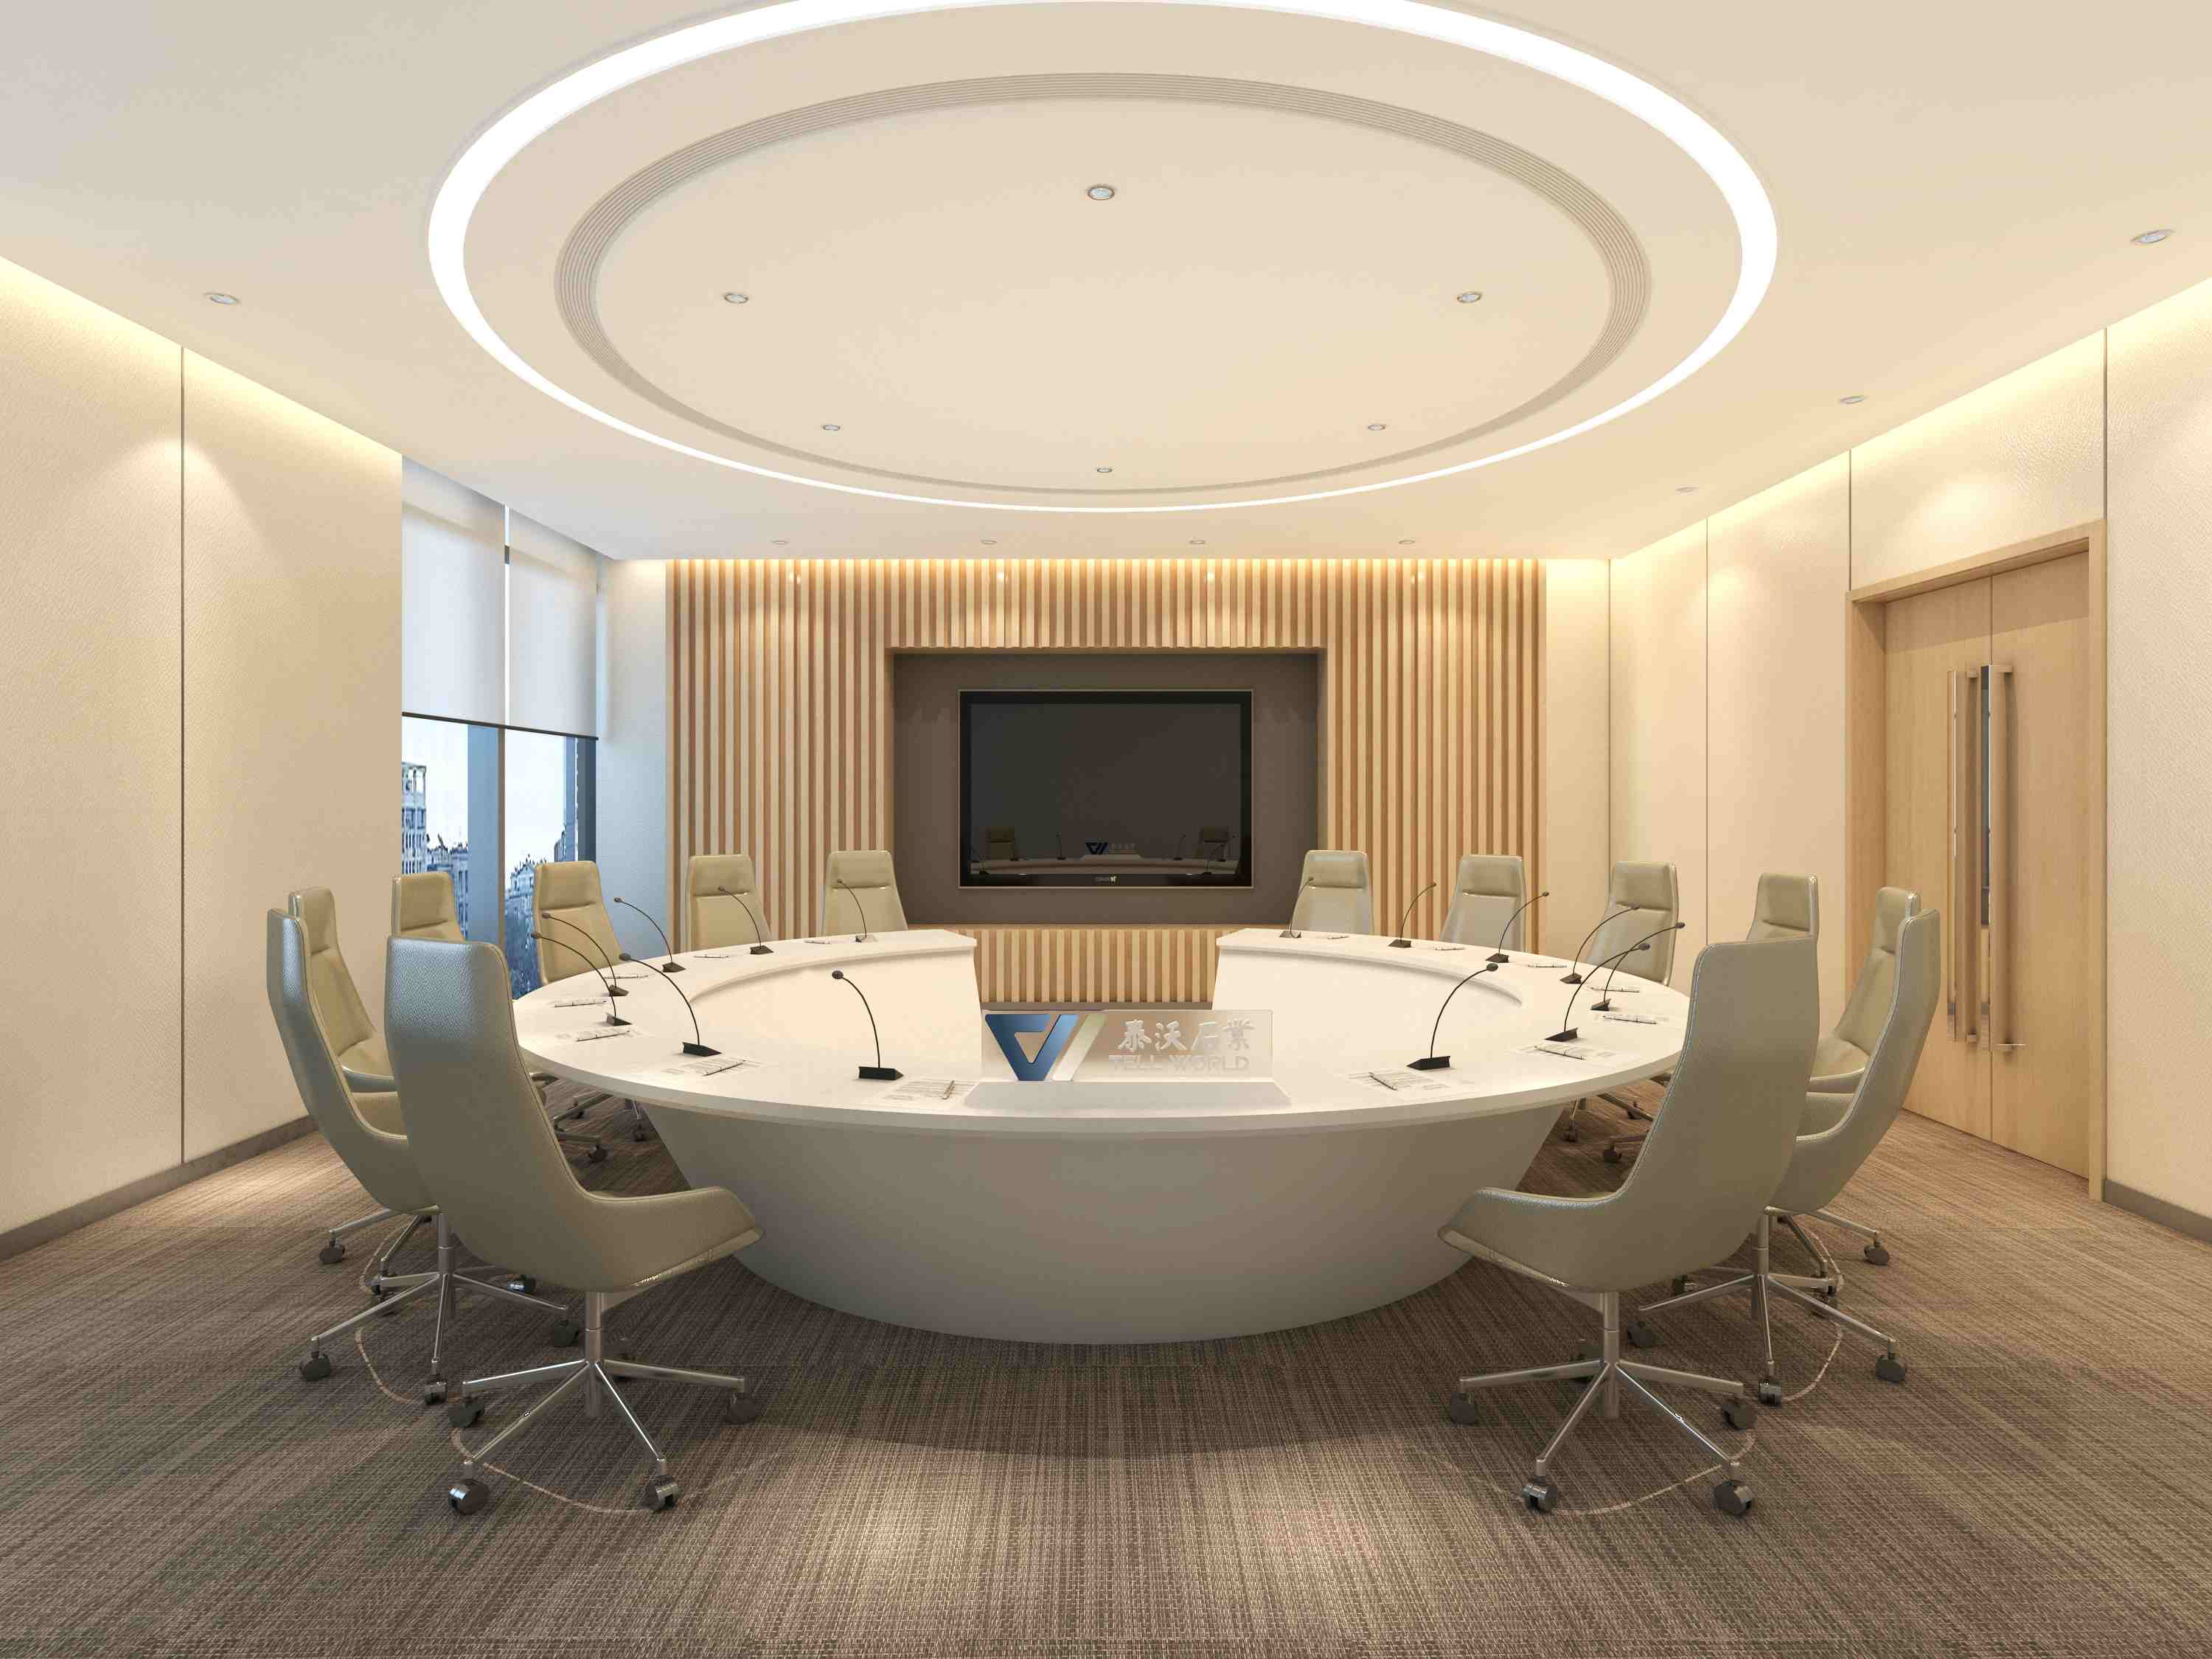 Semicircular Conference Table